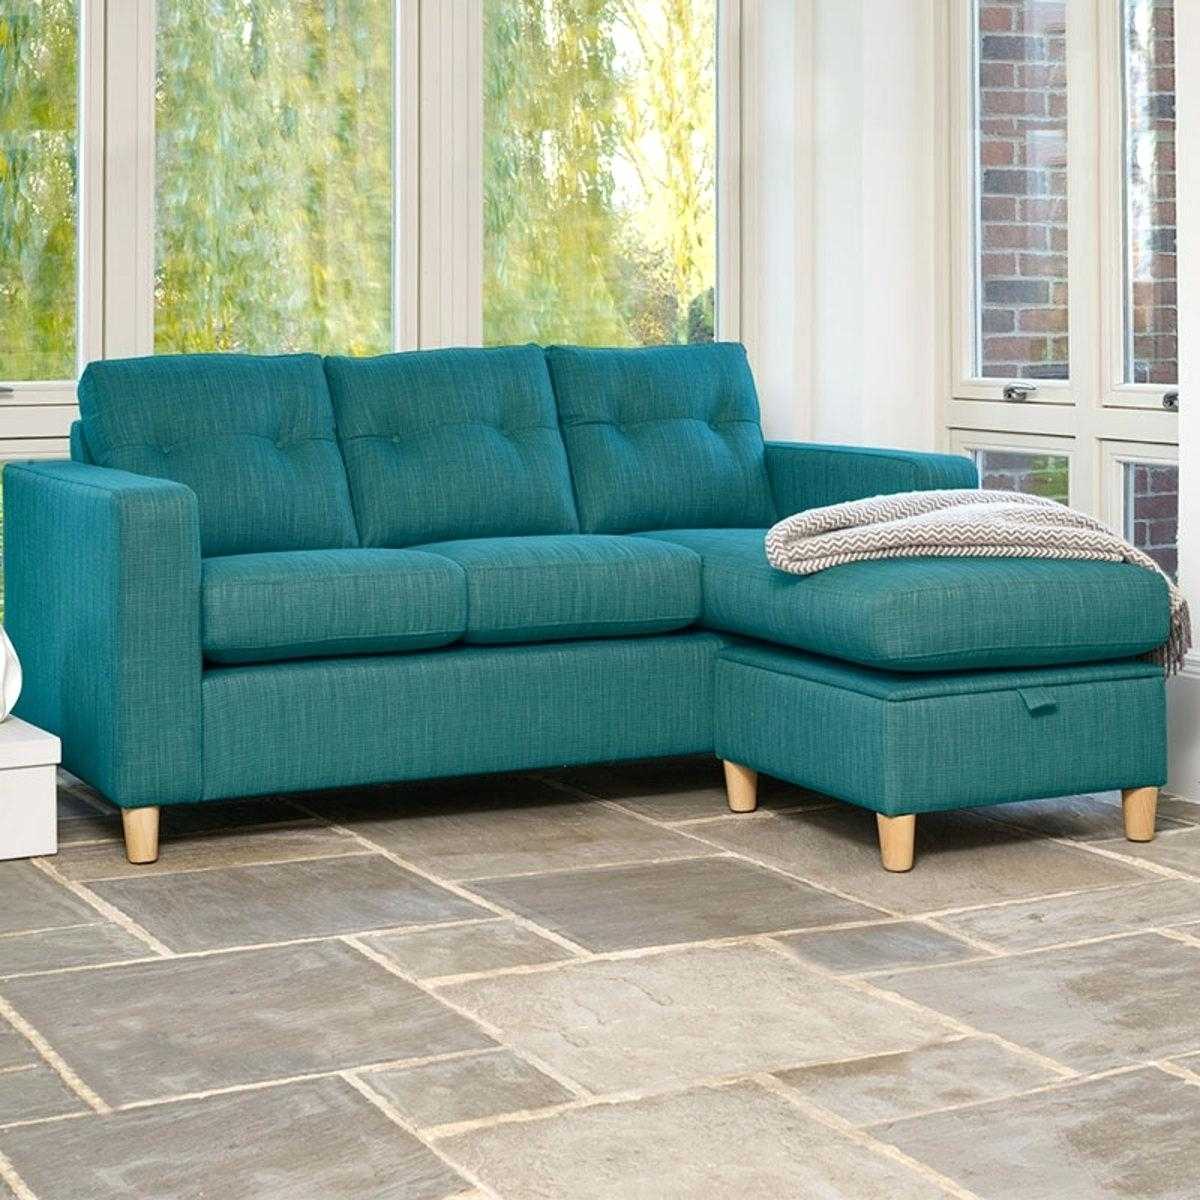 Teal Sofa Bed Target Sectional Sofas For Sale Pertaining To Target Sectional Sofas (View 8 of 10)